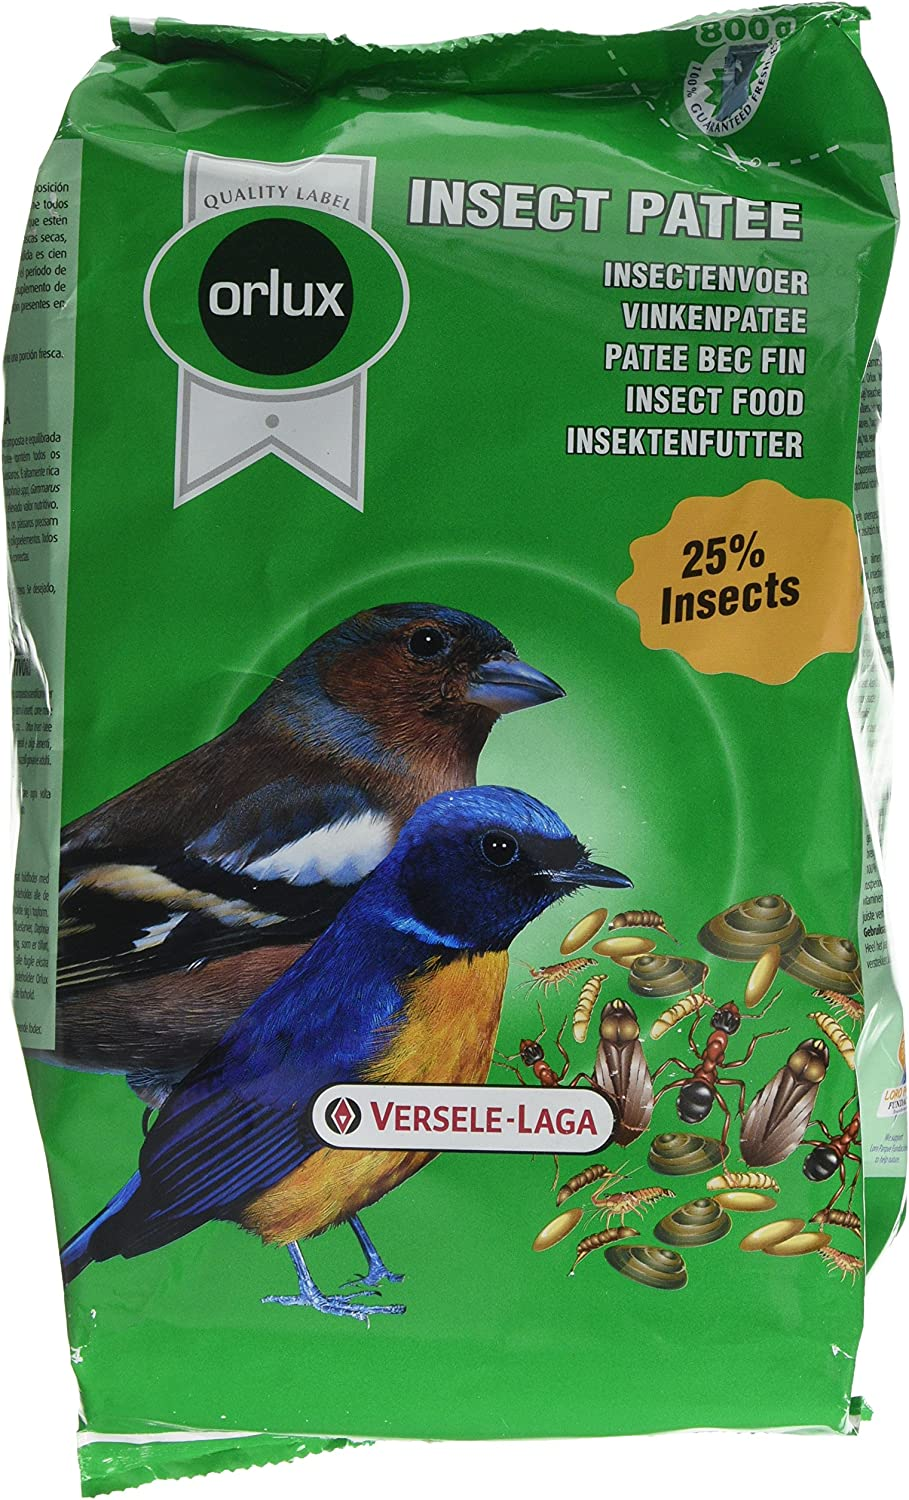 Versele-Laga Orlux Insect Patee Aviary Bird Complete Food 800g 424033